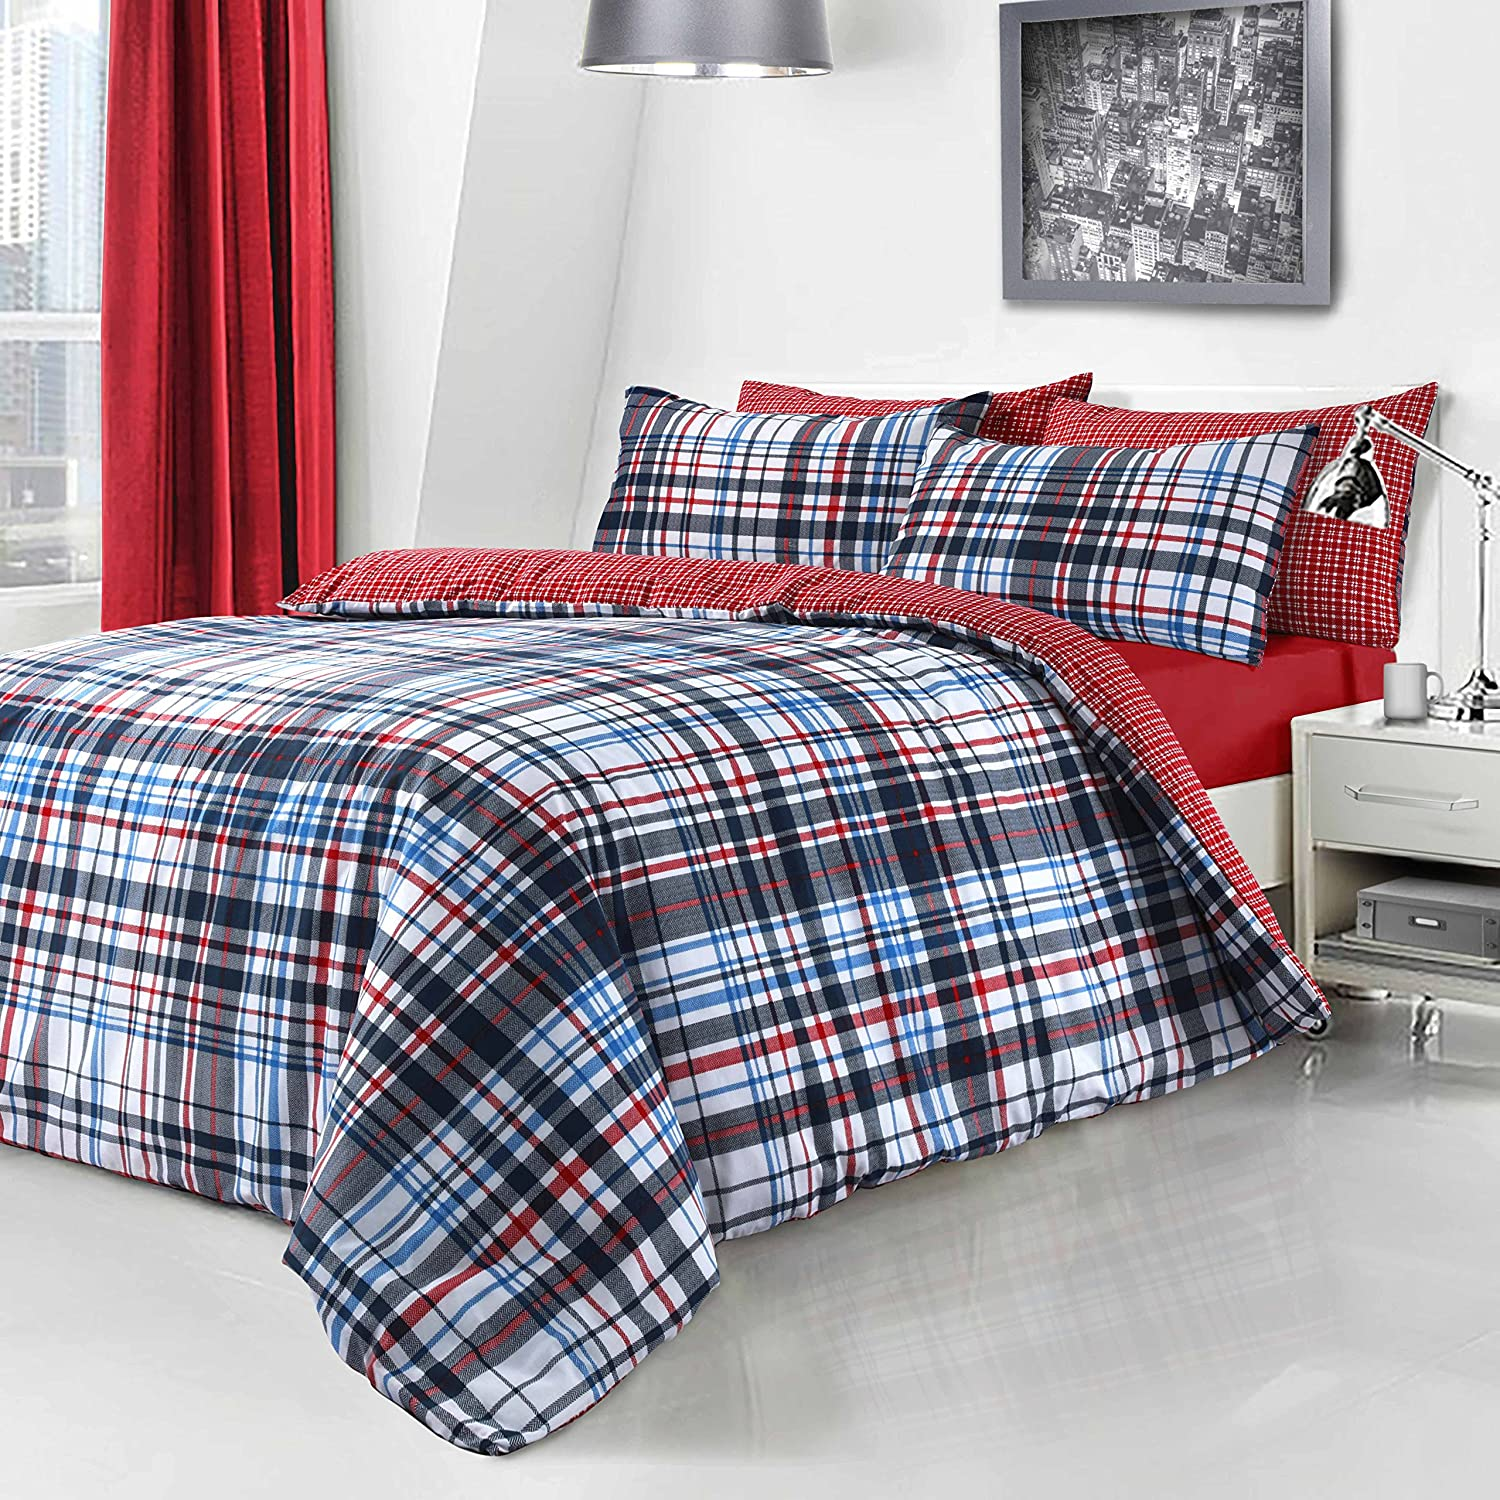 PIERIDAE Blue Check Duvet Quilt Cover + PillowCases (Double)